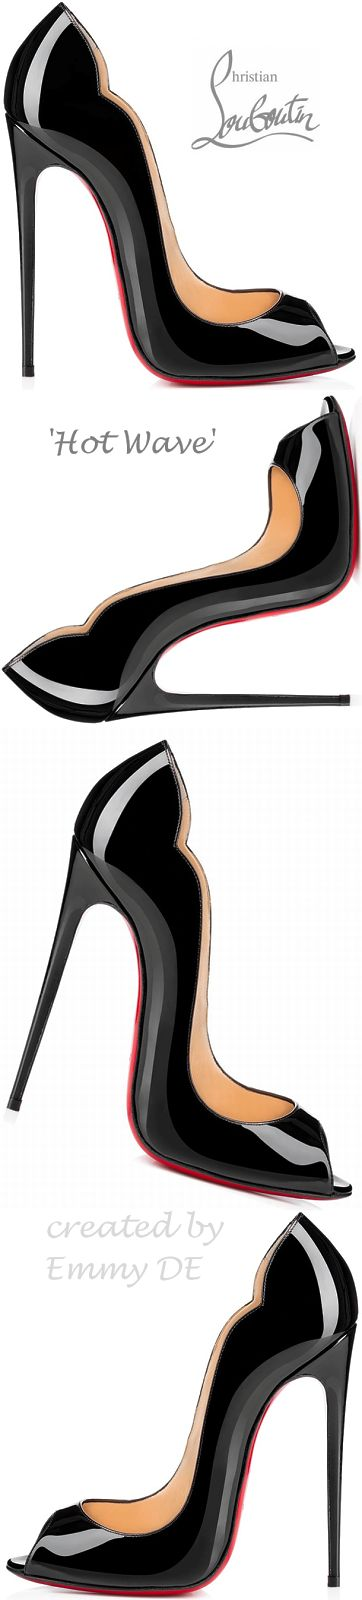 Christian Louboutin 'Hot Wave' Spring 2015                              …